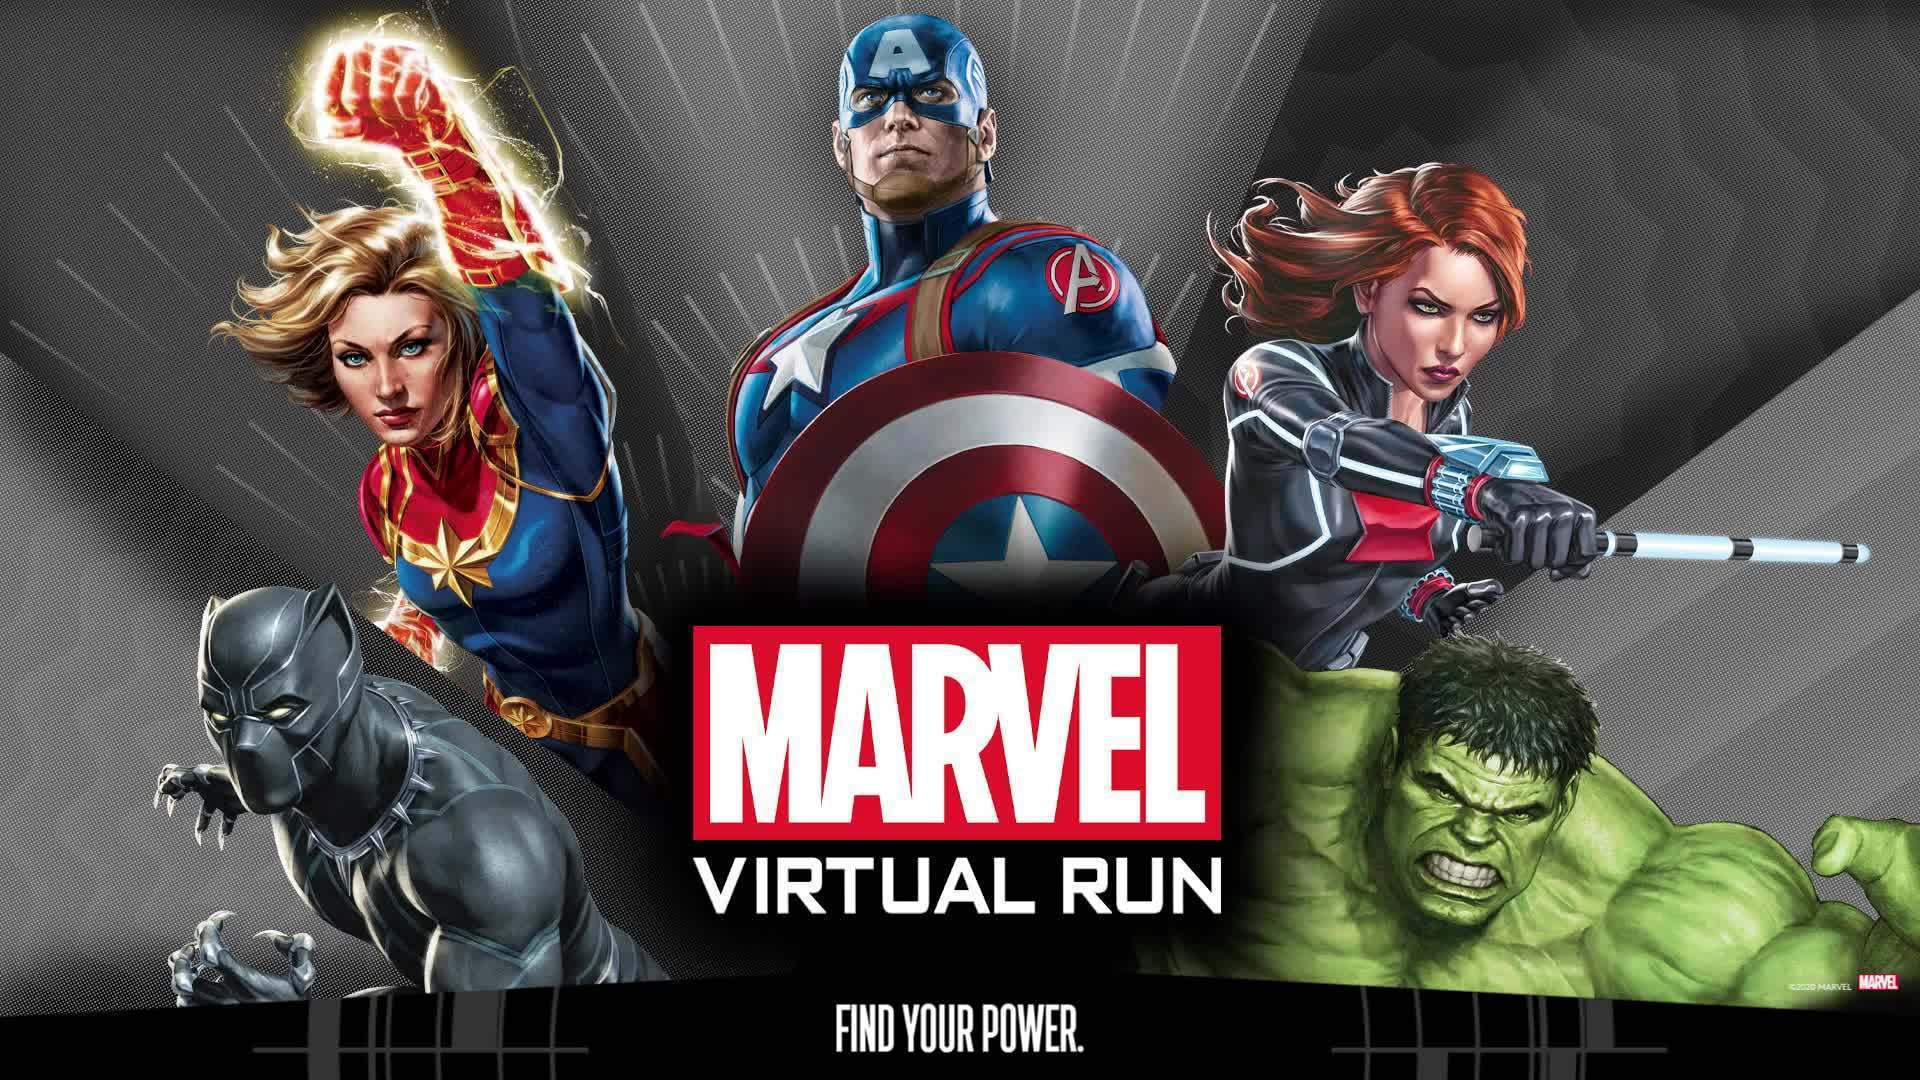 Marvel Virtual Run Instructions